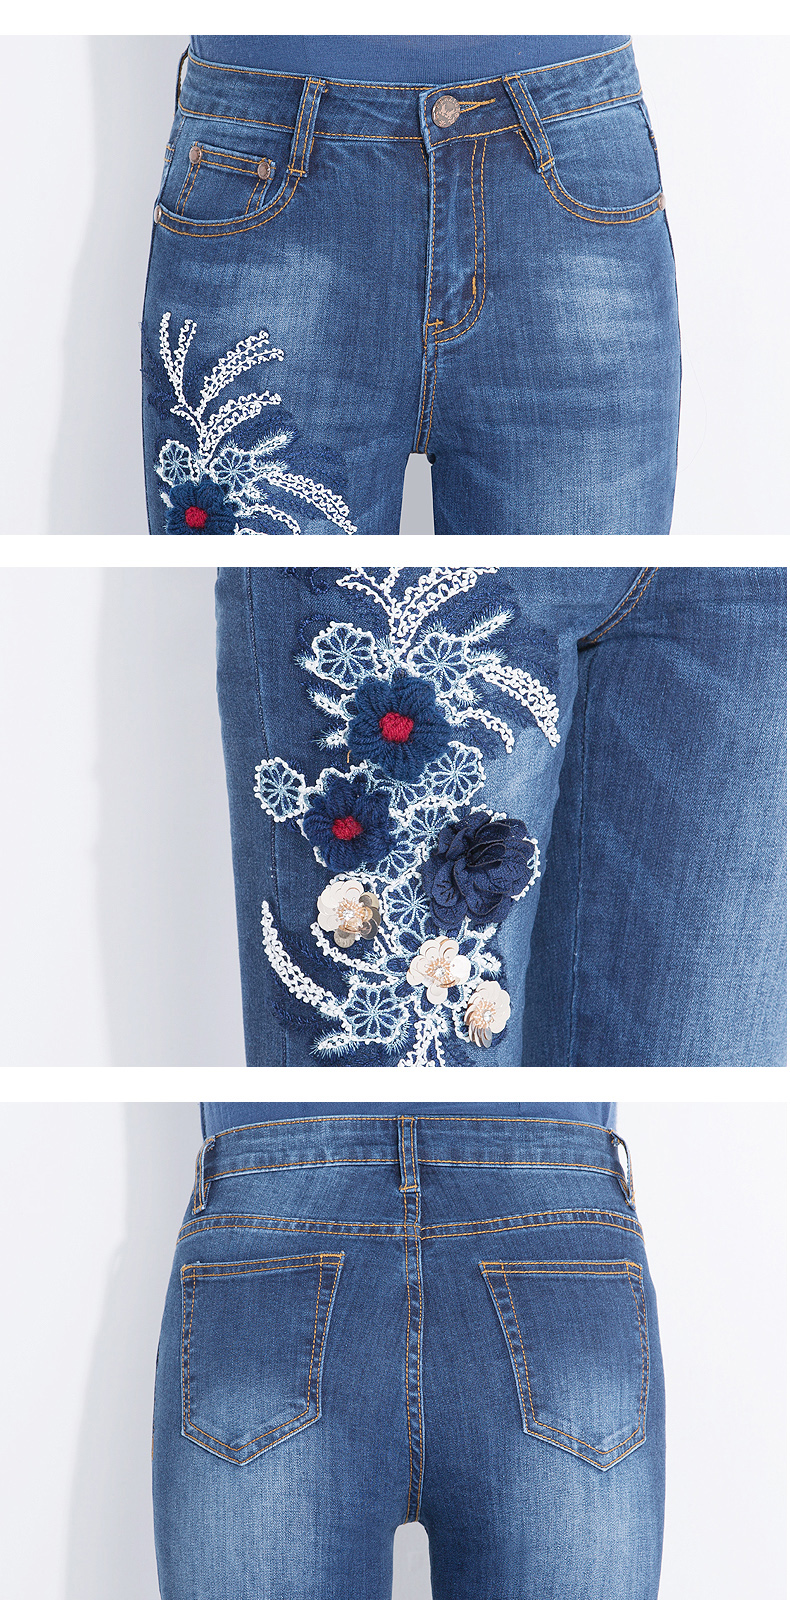 FERZIGE Women's Jeans High Waist Elasticity Slim Fit Push Embroidered Denim Jeans Appliques Flowers